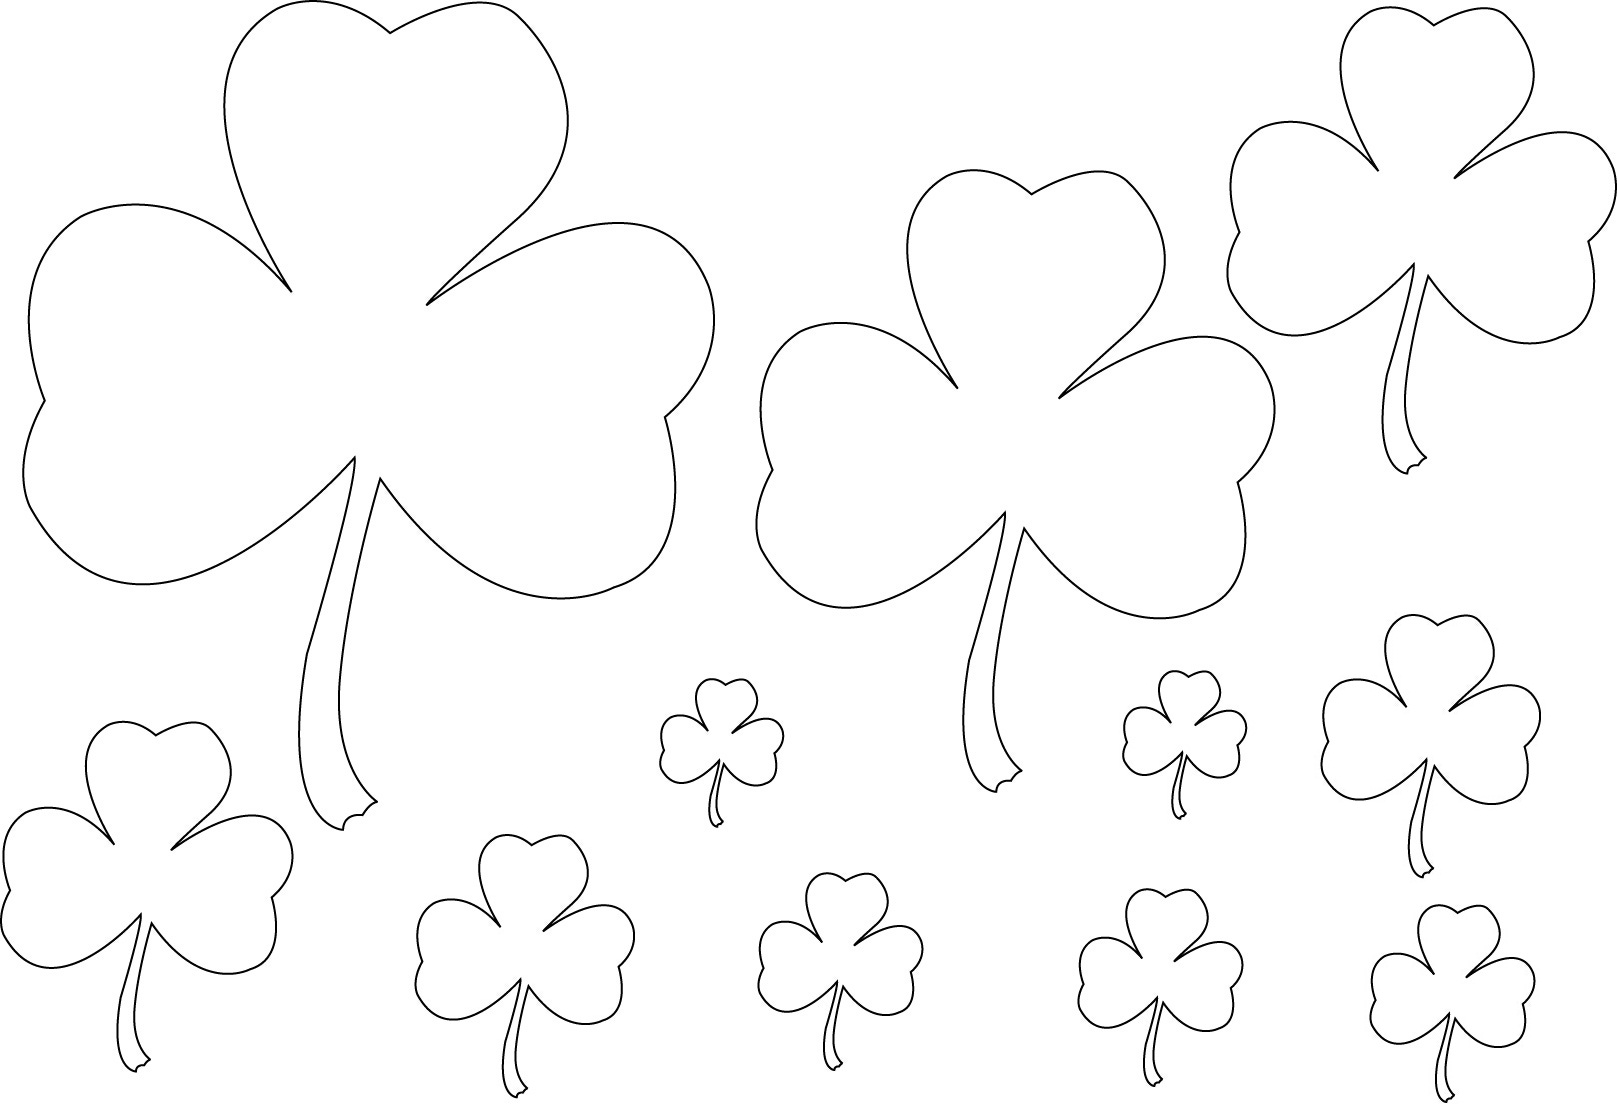 picture about Shamrock Coloring Pages Printable titled No cost Printable Shamrock Coloring Internet pages For Young children